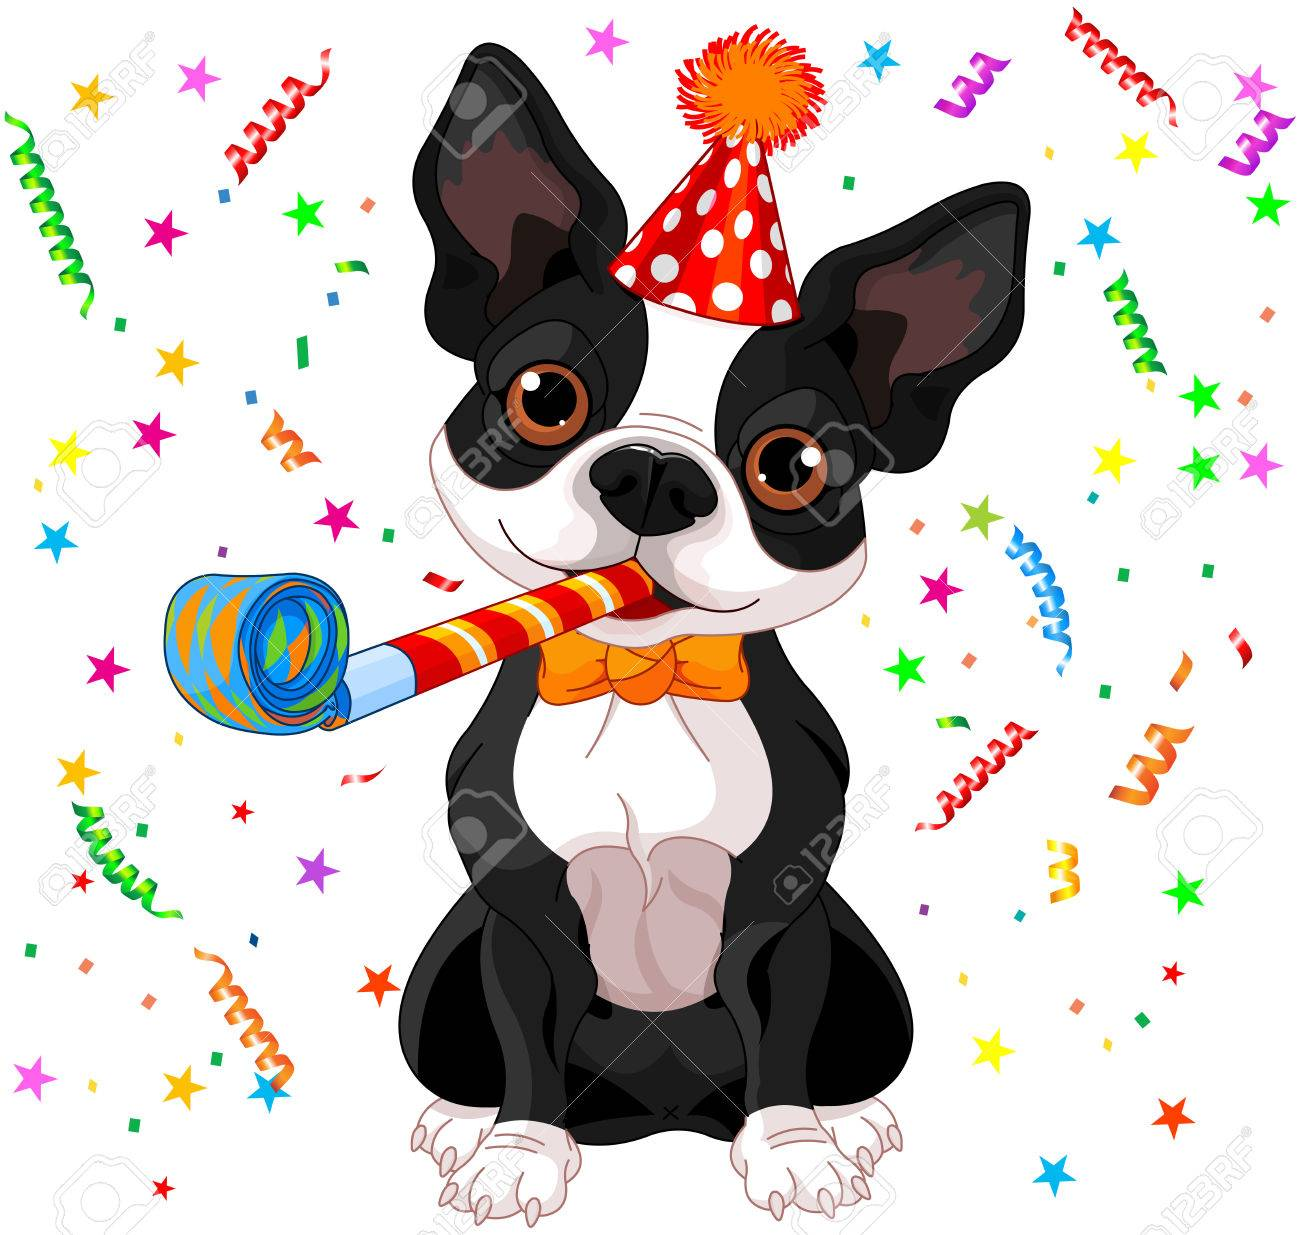 Fabriquer des jeux d'intérieur 35588778-illustration-of-cute-boston-terrier-celebrating